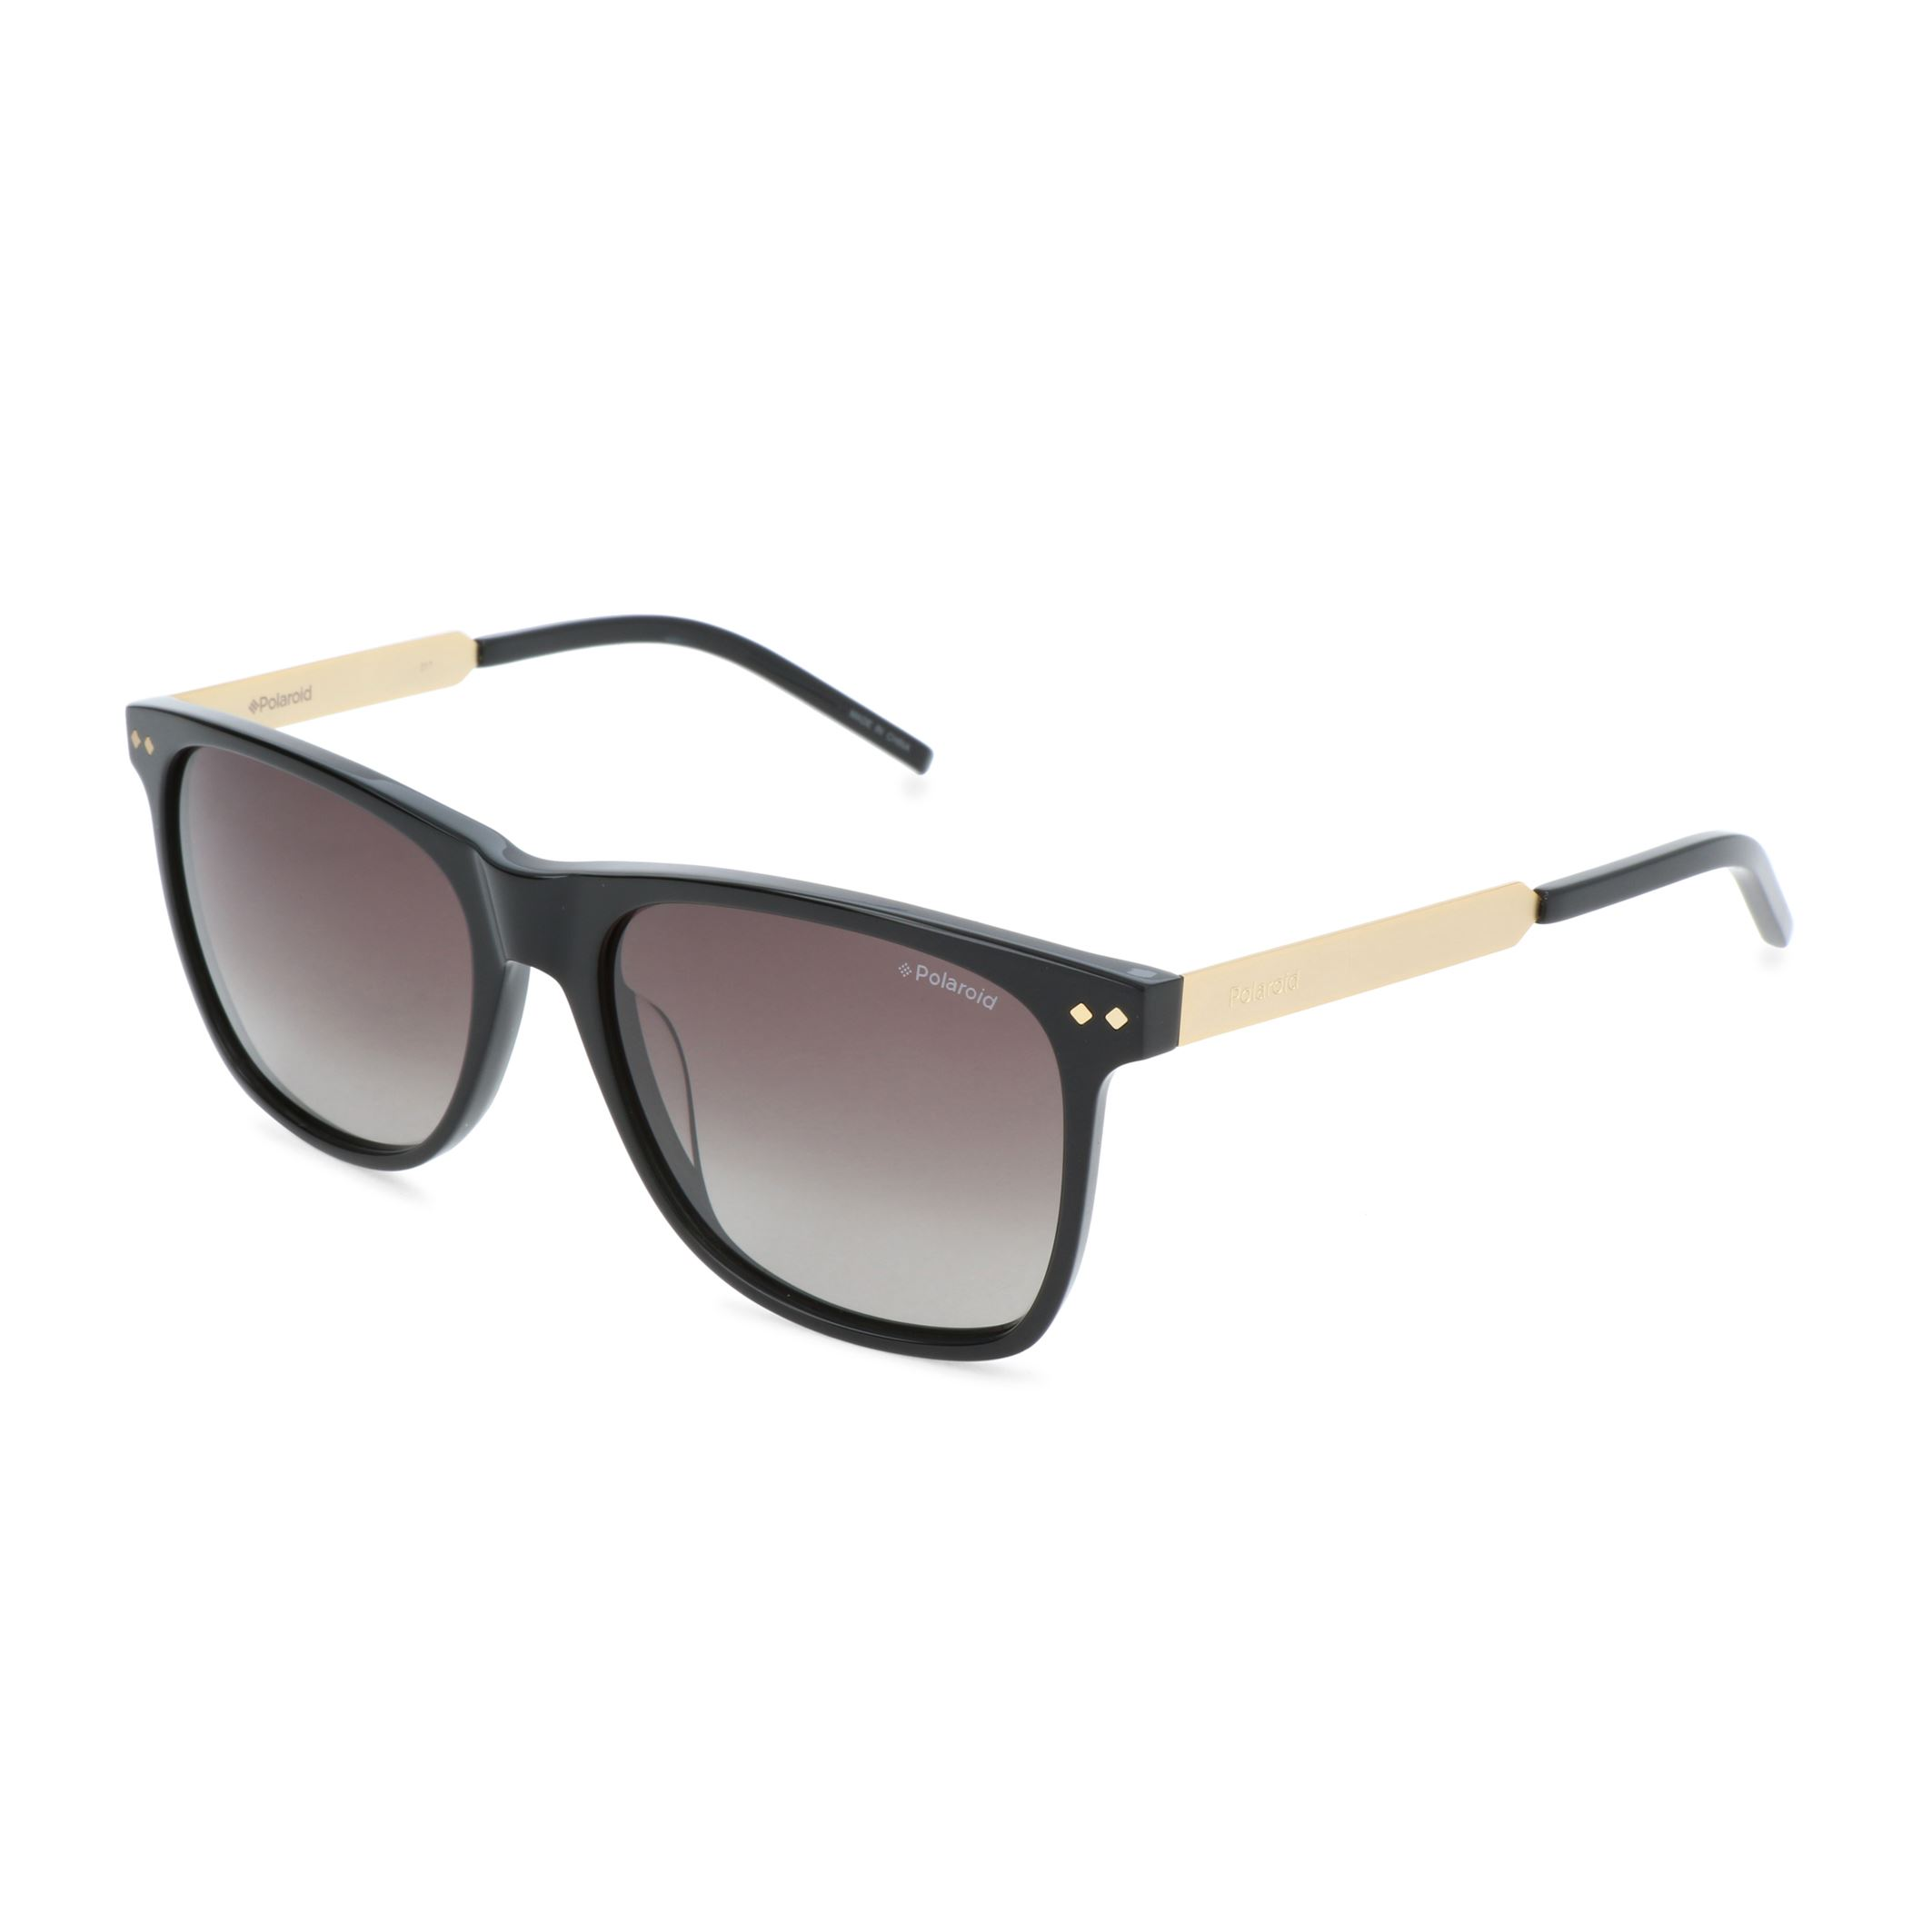 ae491e20b6b1a Details about Polaroid Men s Black Polarized Sunglasses UV3 Protection  Acetate Frame Sunnies